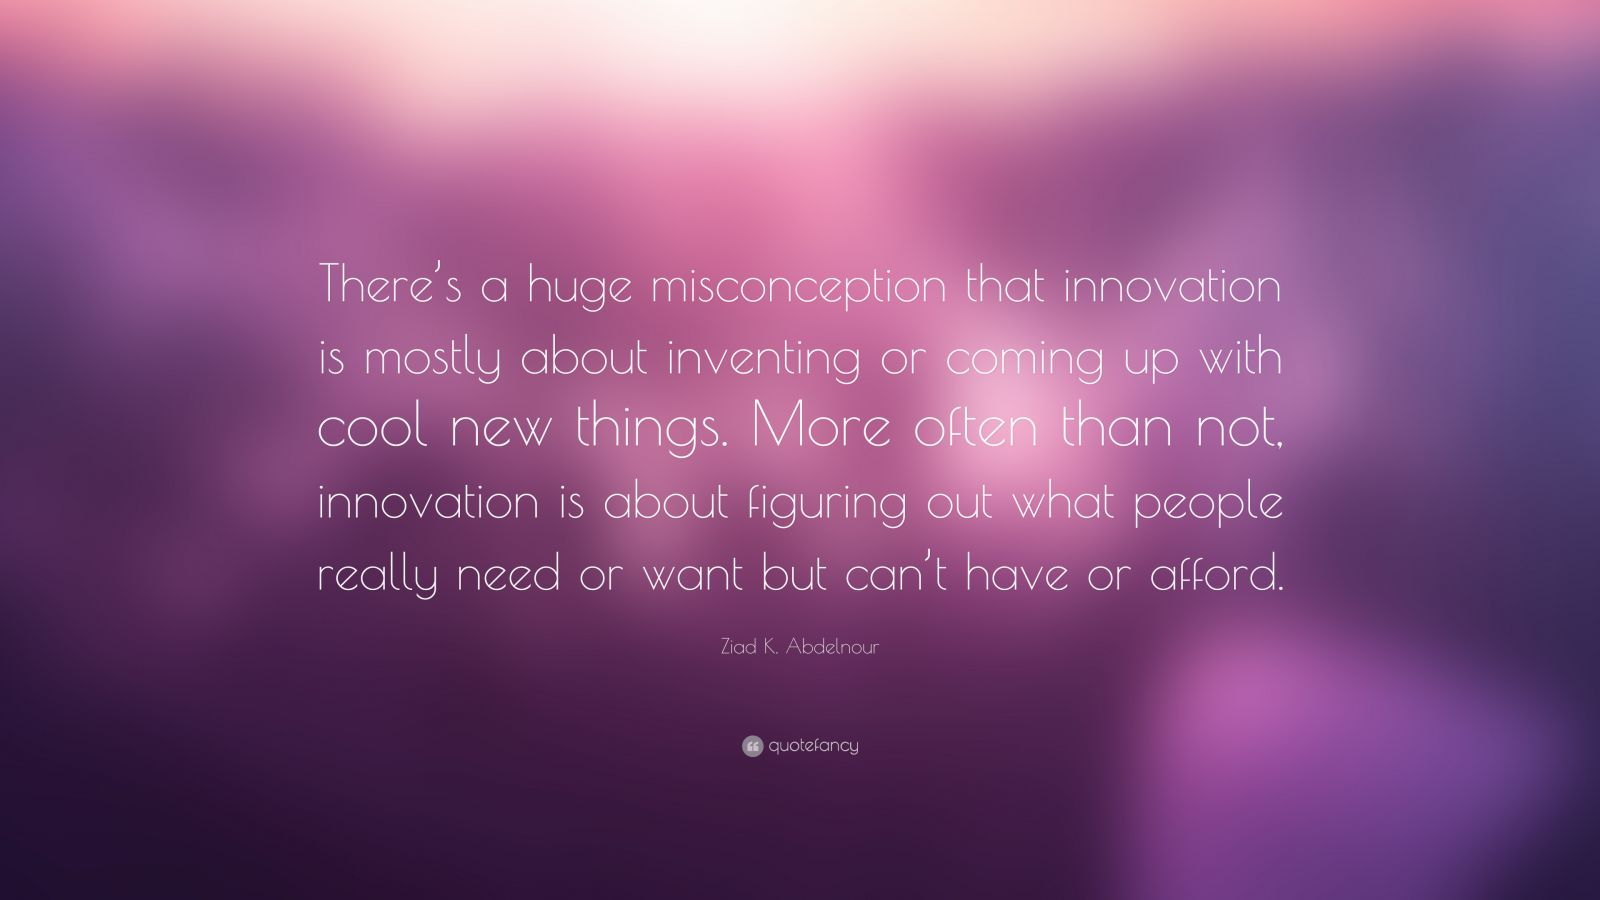 """Ziad K. Abdelnour Quote: """"There's a huge misconception that innovation is mostly about inventing or coming up with cool new things. More often than not, innovation is about figuring out what people really need or want but can't have or afford."""""""